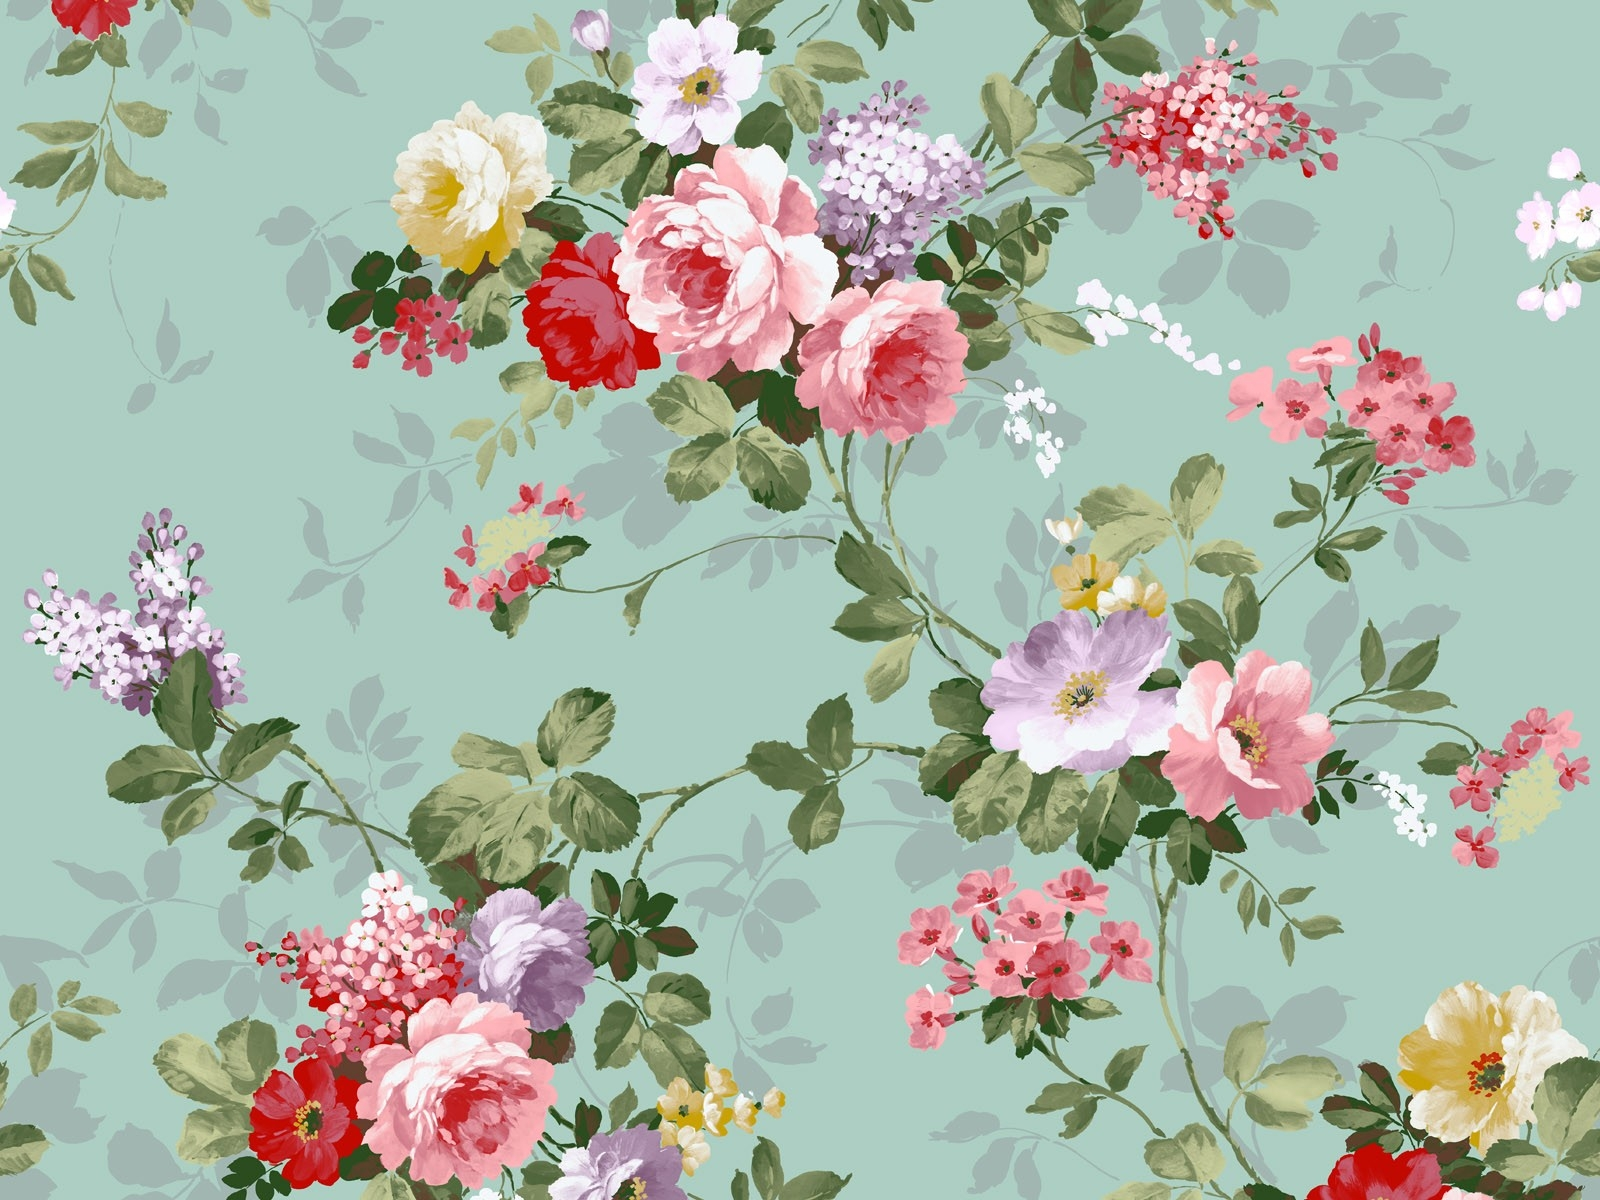 Cute Vintage Flowers Wallpaper